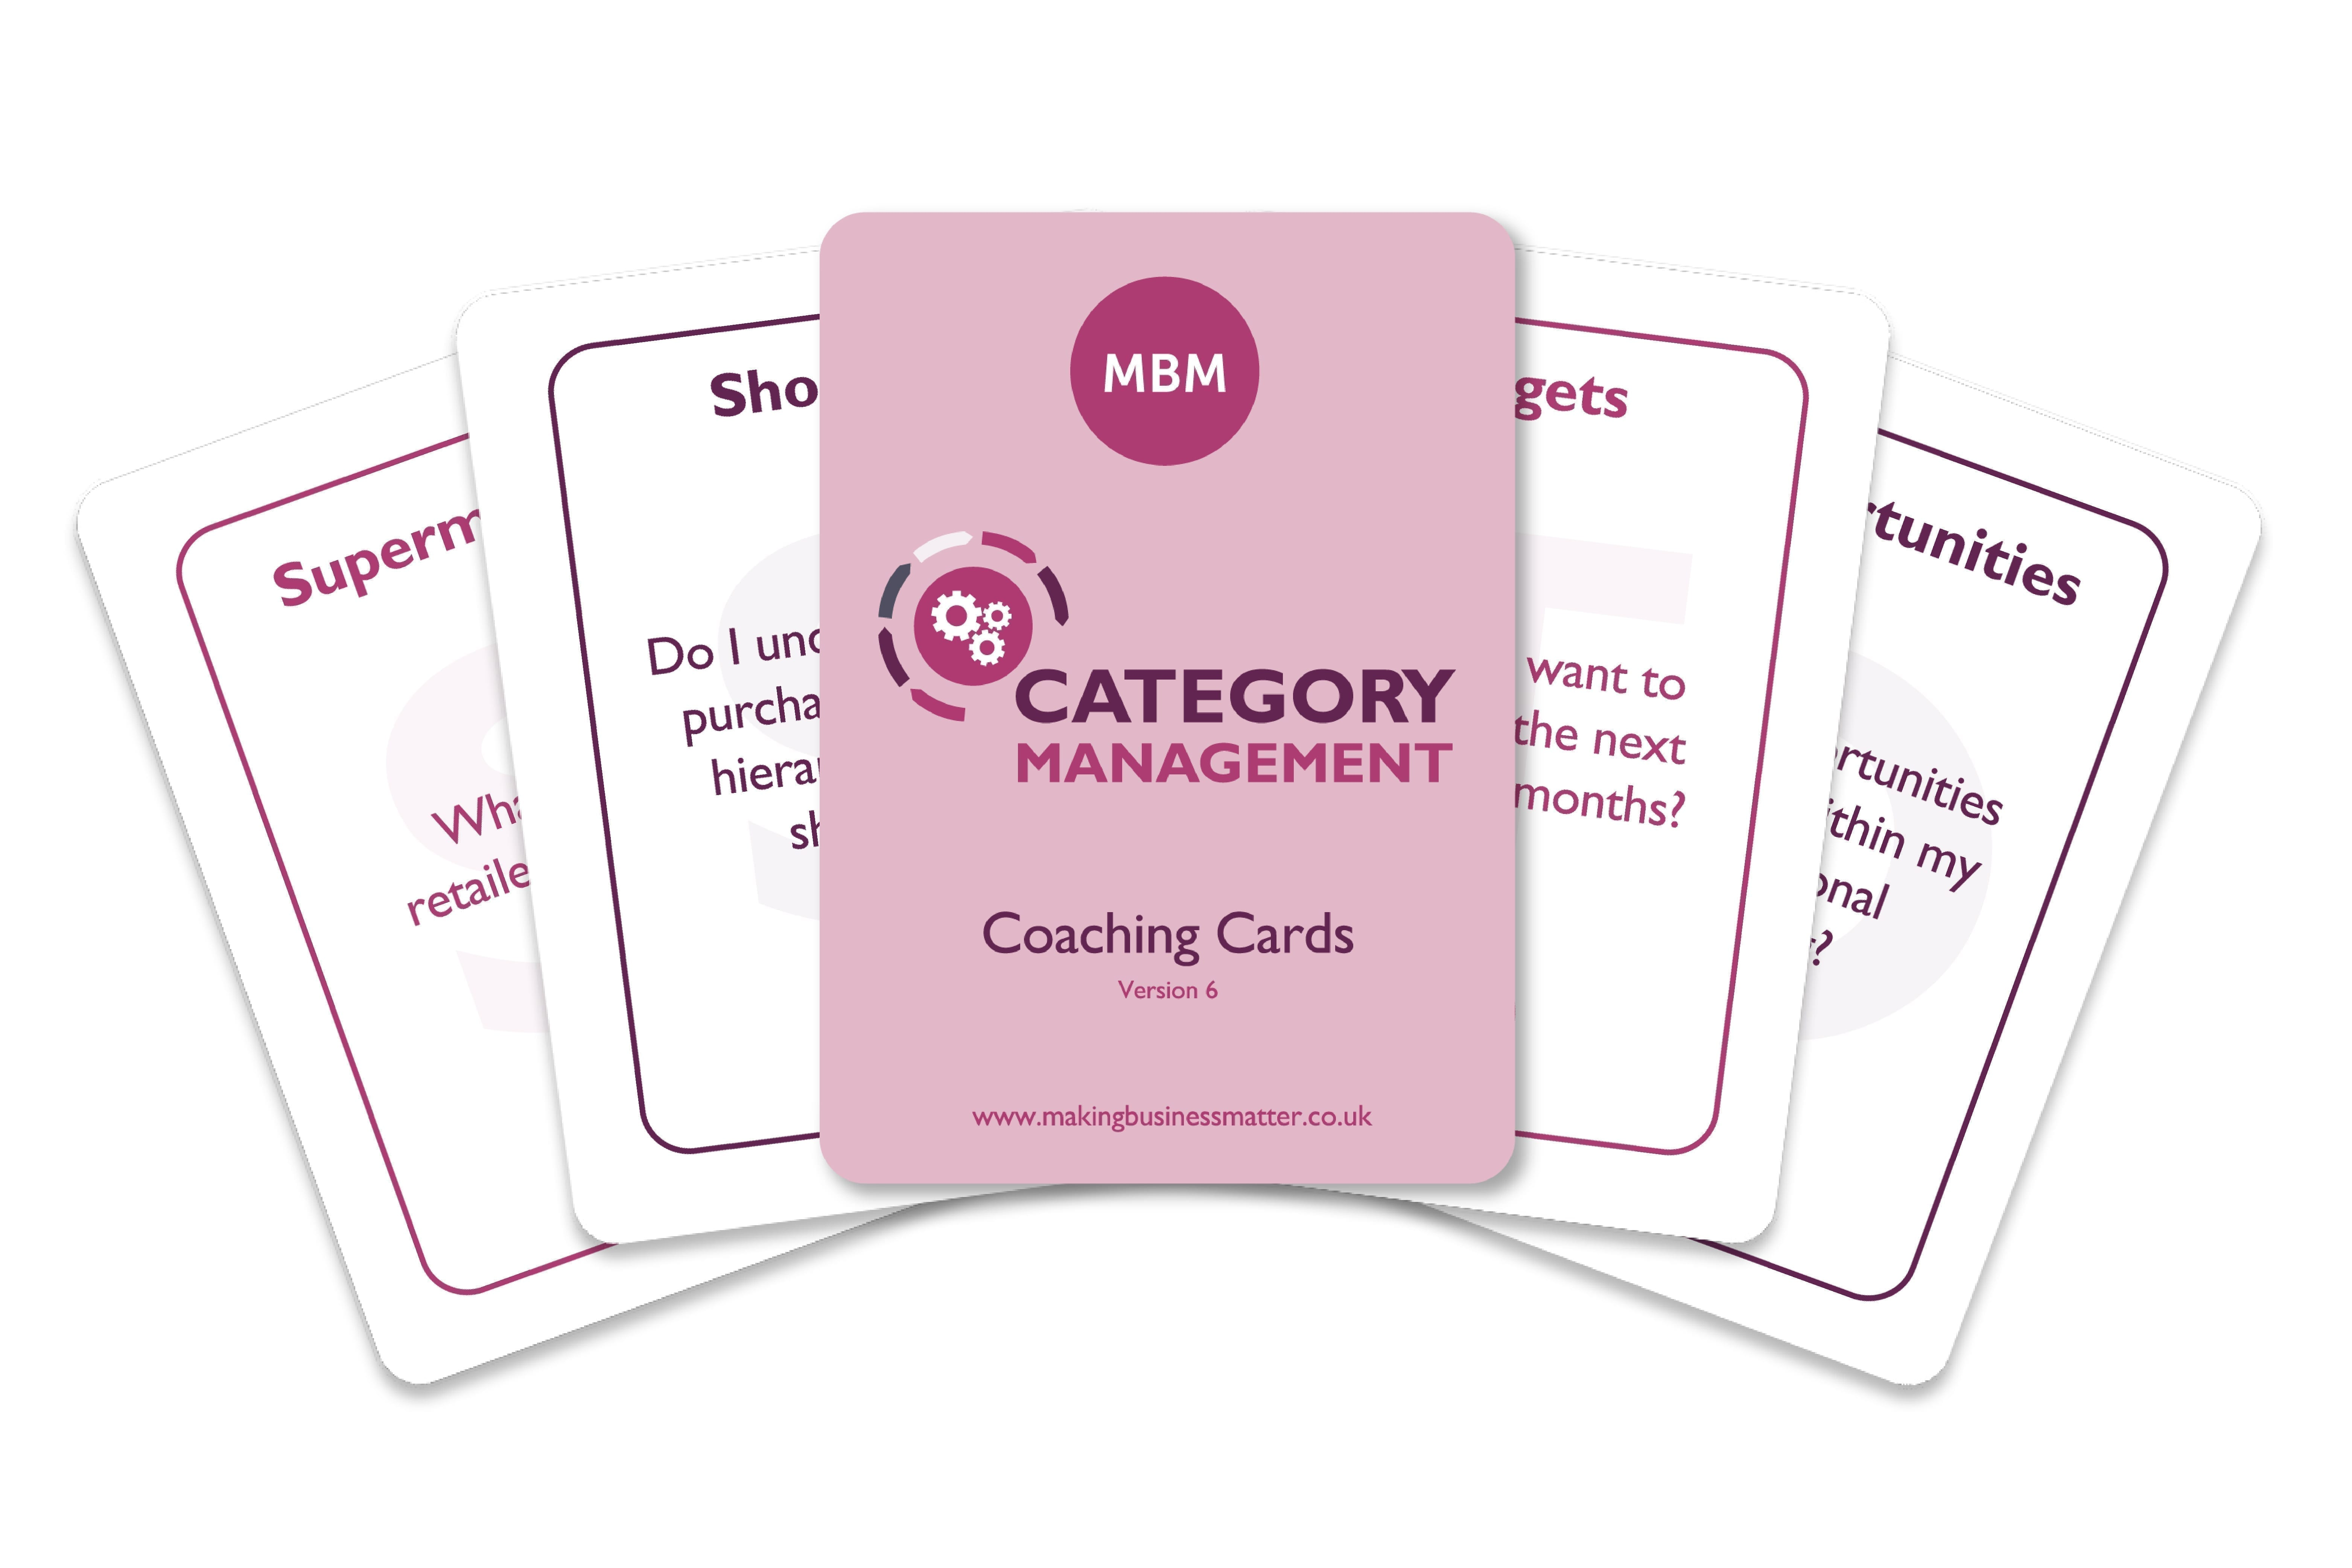 Coaching Cards Online Free Tools: GROW, Mental Health, and More!